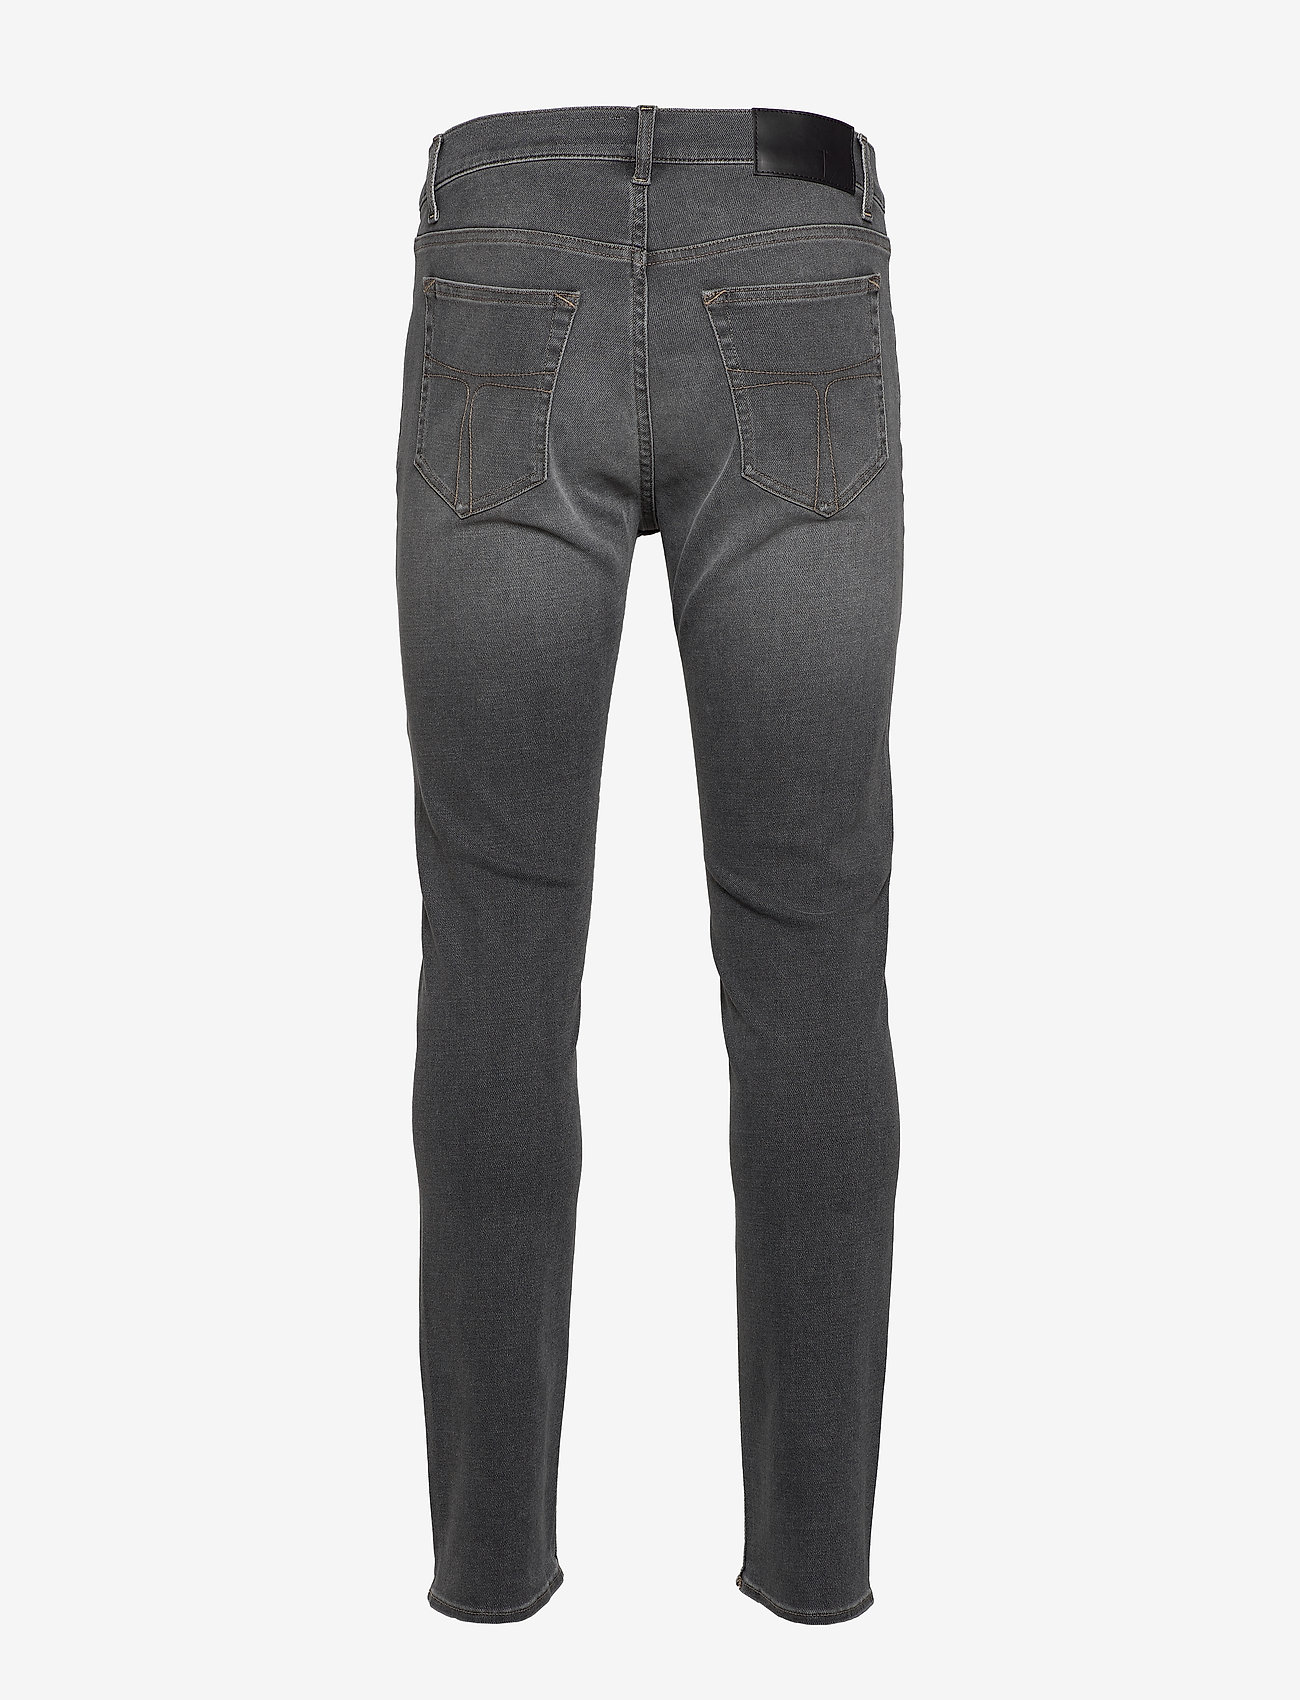 Tiger of Sweden Jeans - LEON - relaxed jeans - black - 1